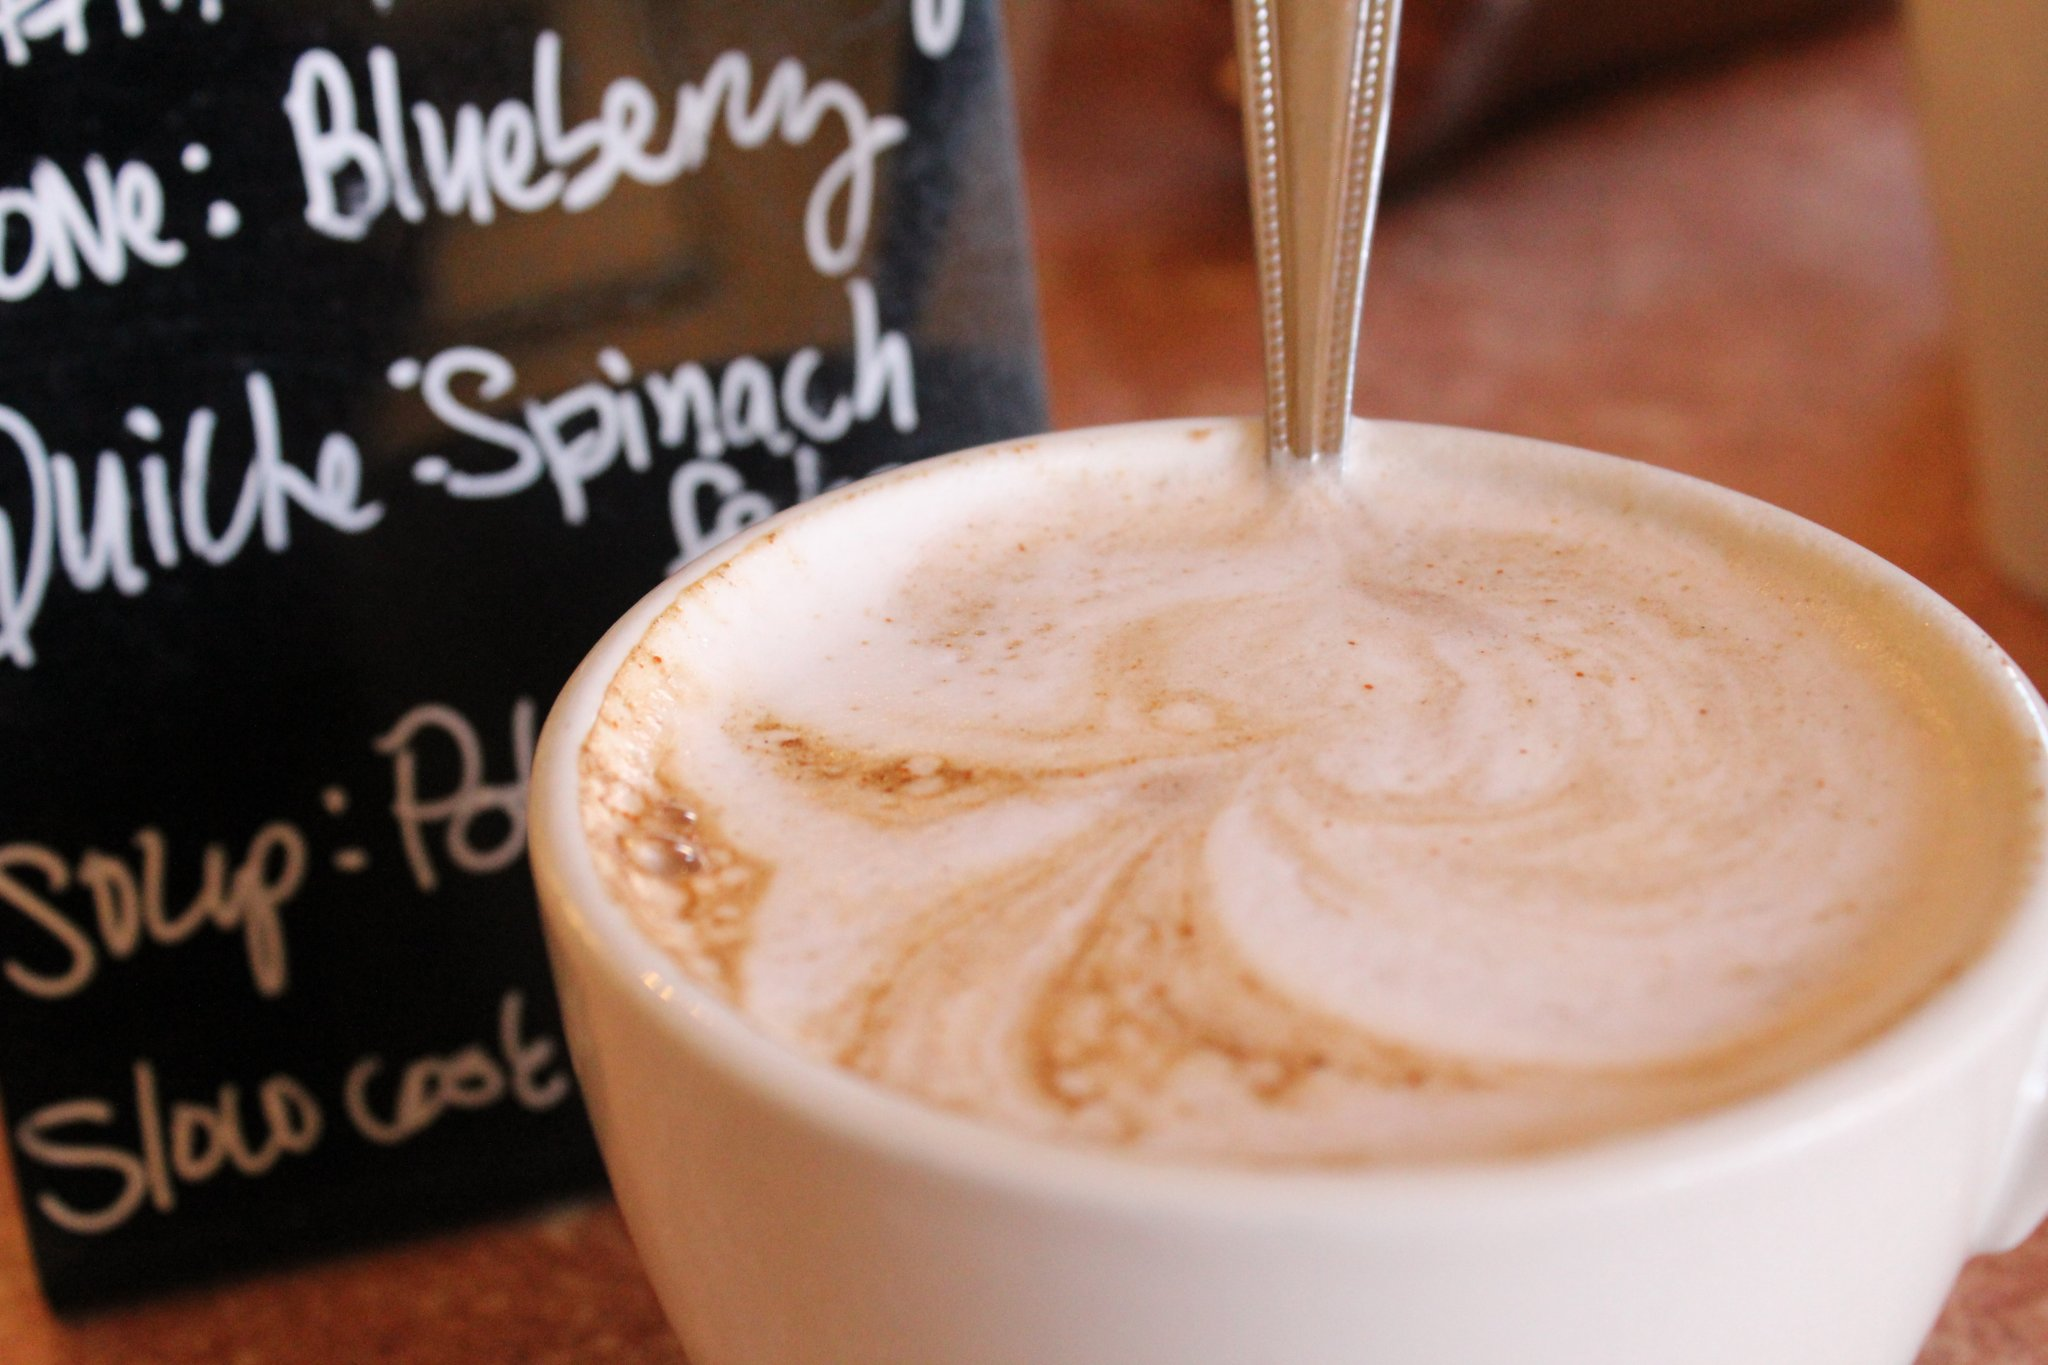 Guide to Canyon Road: Tea House Spicy Hot Chocolate